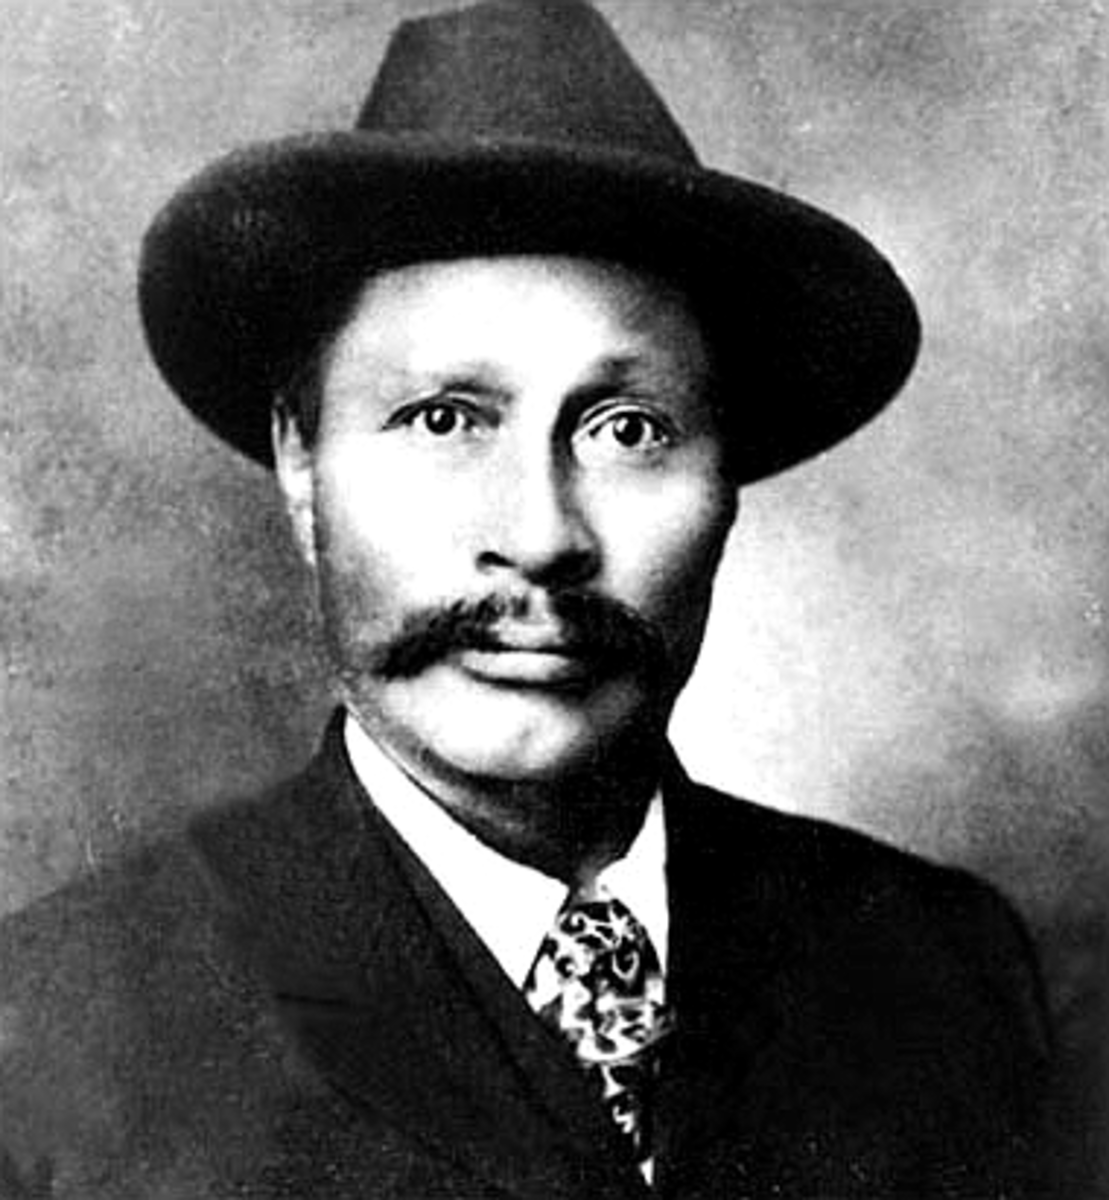 Keish (Skookum Jim Mason) in 1898.